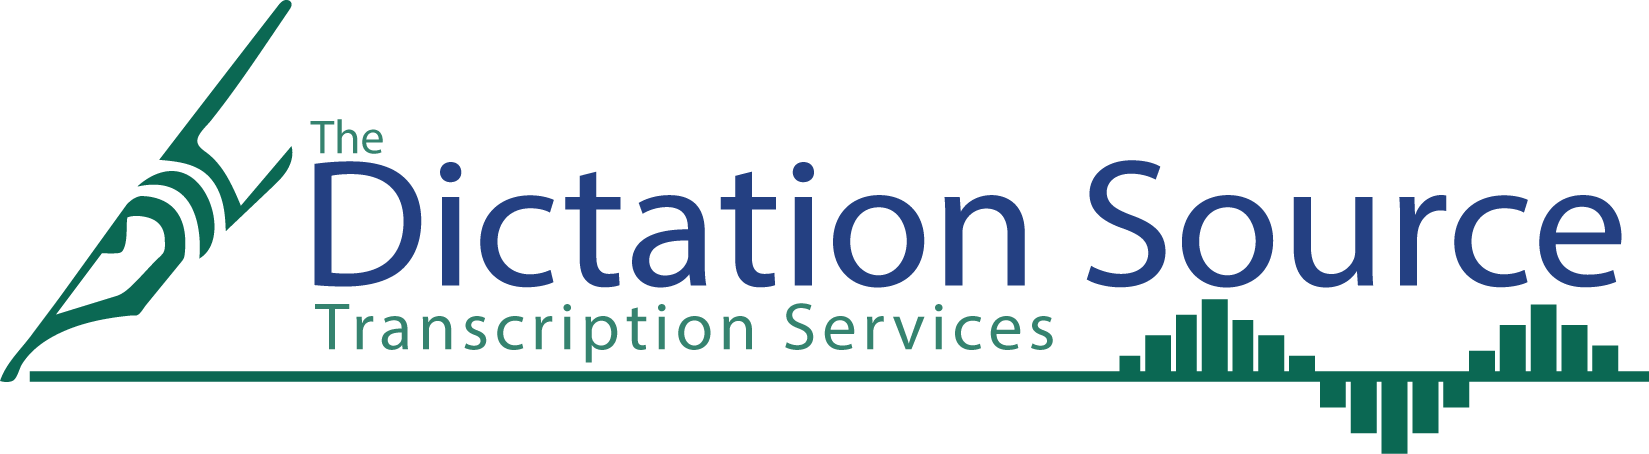 The Dictation Source Logo